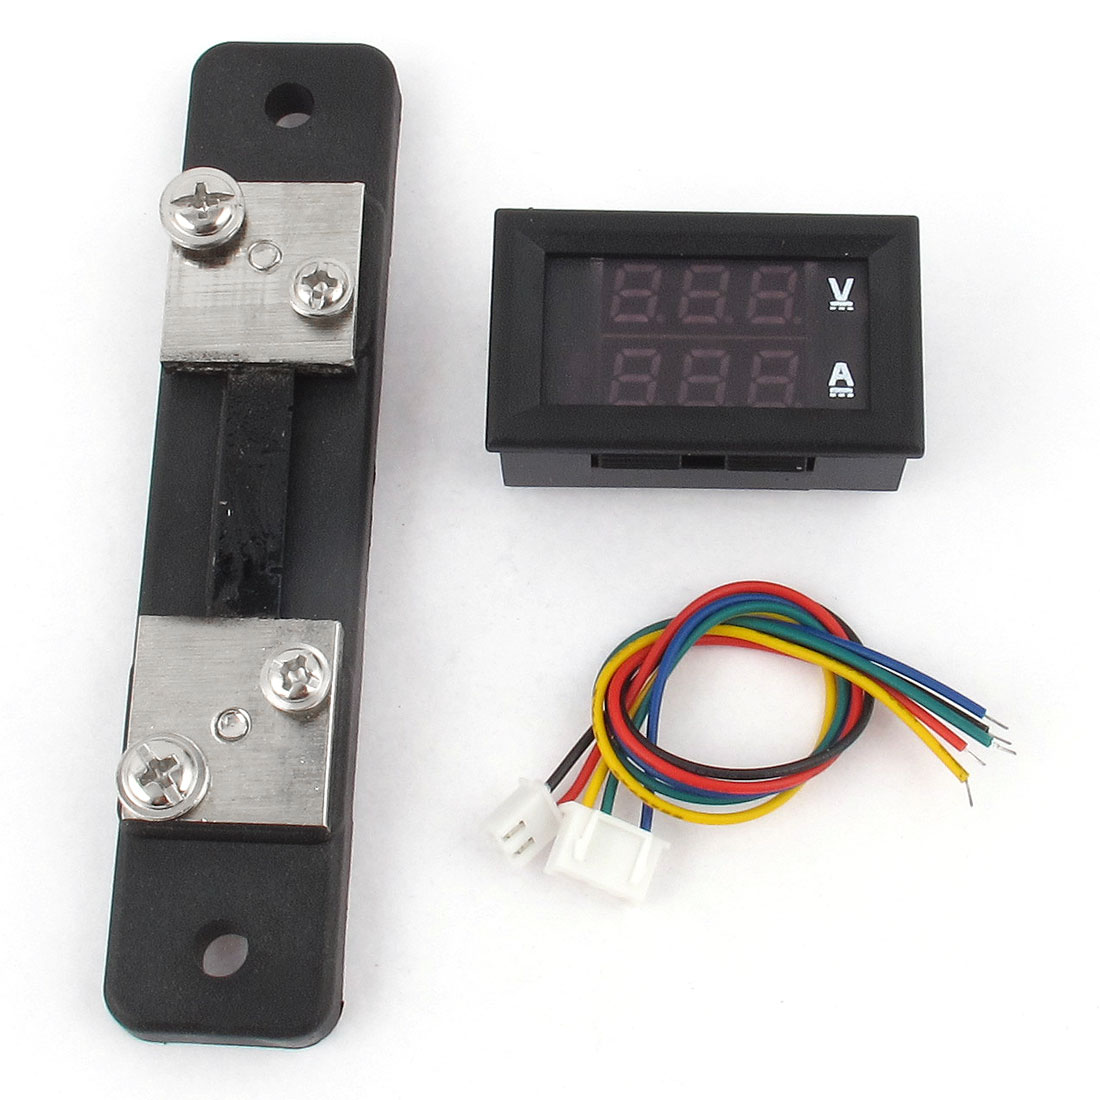 Cheap Voltmeter Shunt, find Voltmeter Shunt deals on line at Alibaba.com